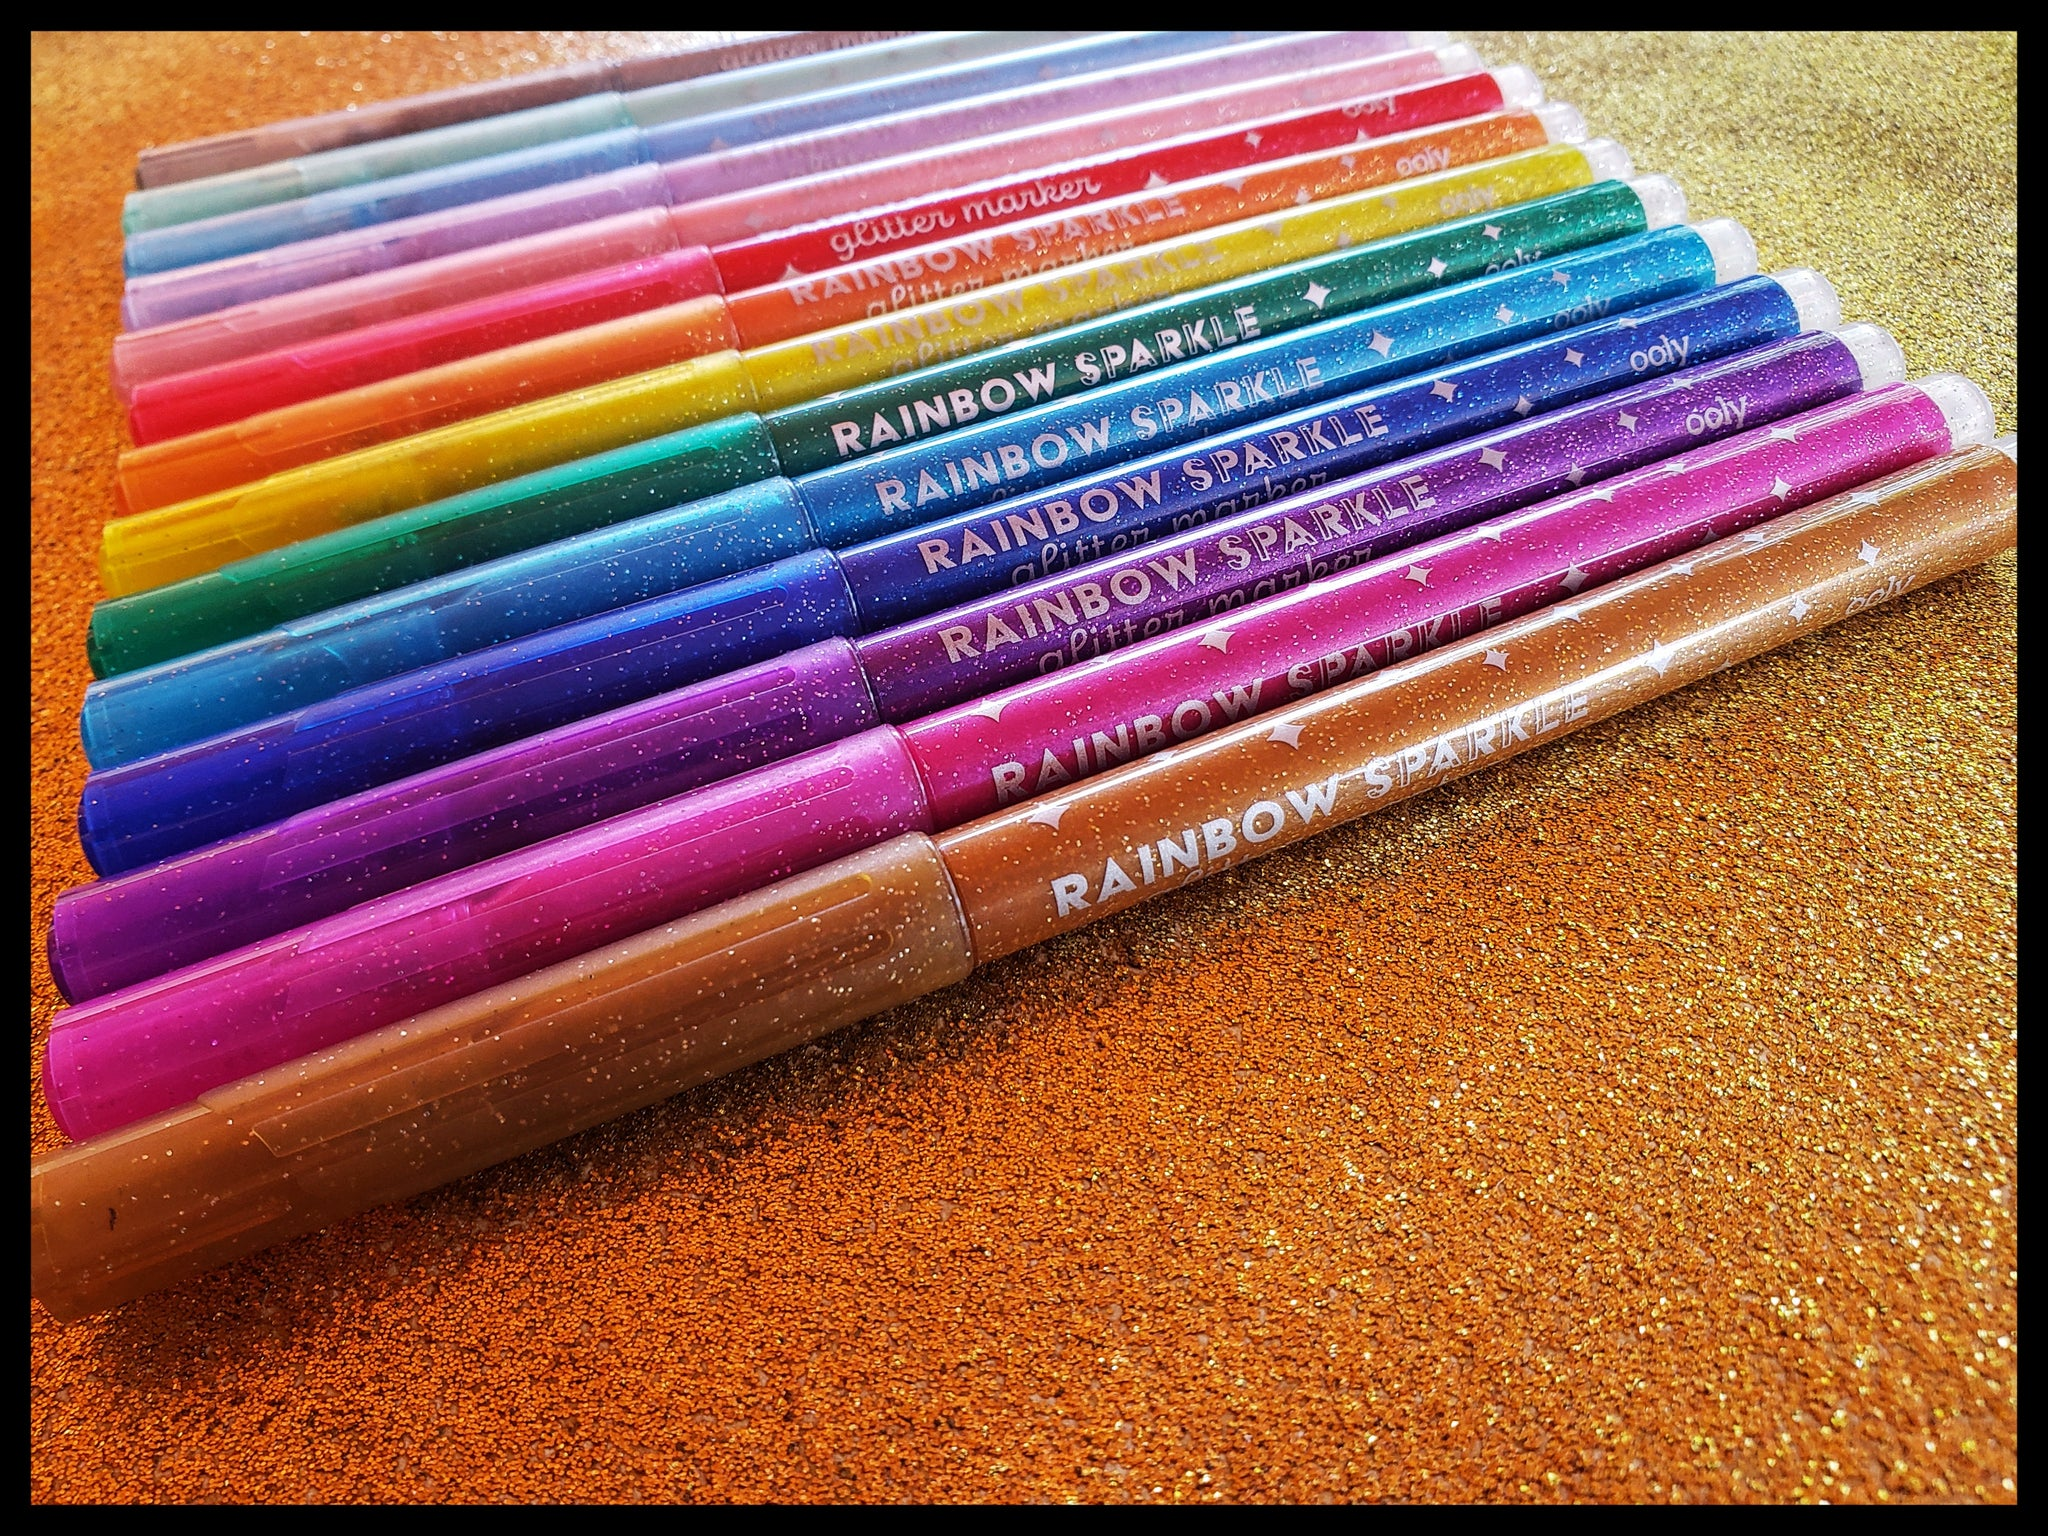 "Rainbow 15 Markers total, 5 pastel, 10 classic colors   Rounded Marker Tip  Non-toxic   Coloring, Decorating, Outlining, Glittery art and more!  6"" x 6"" in box ADA  The Gilded Page Santa Fe New Mexico"